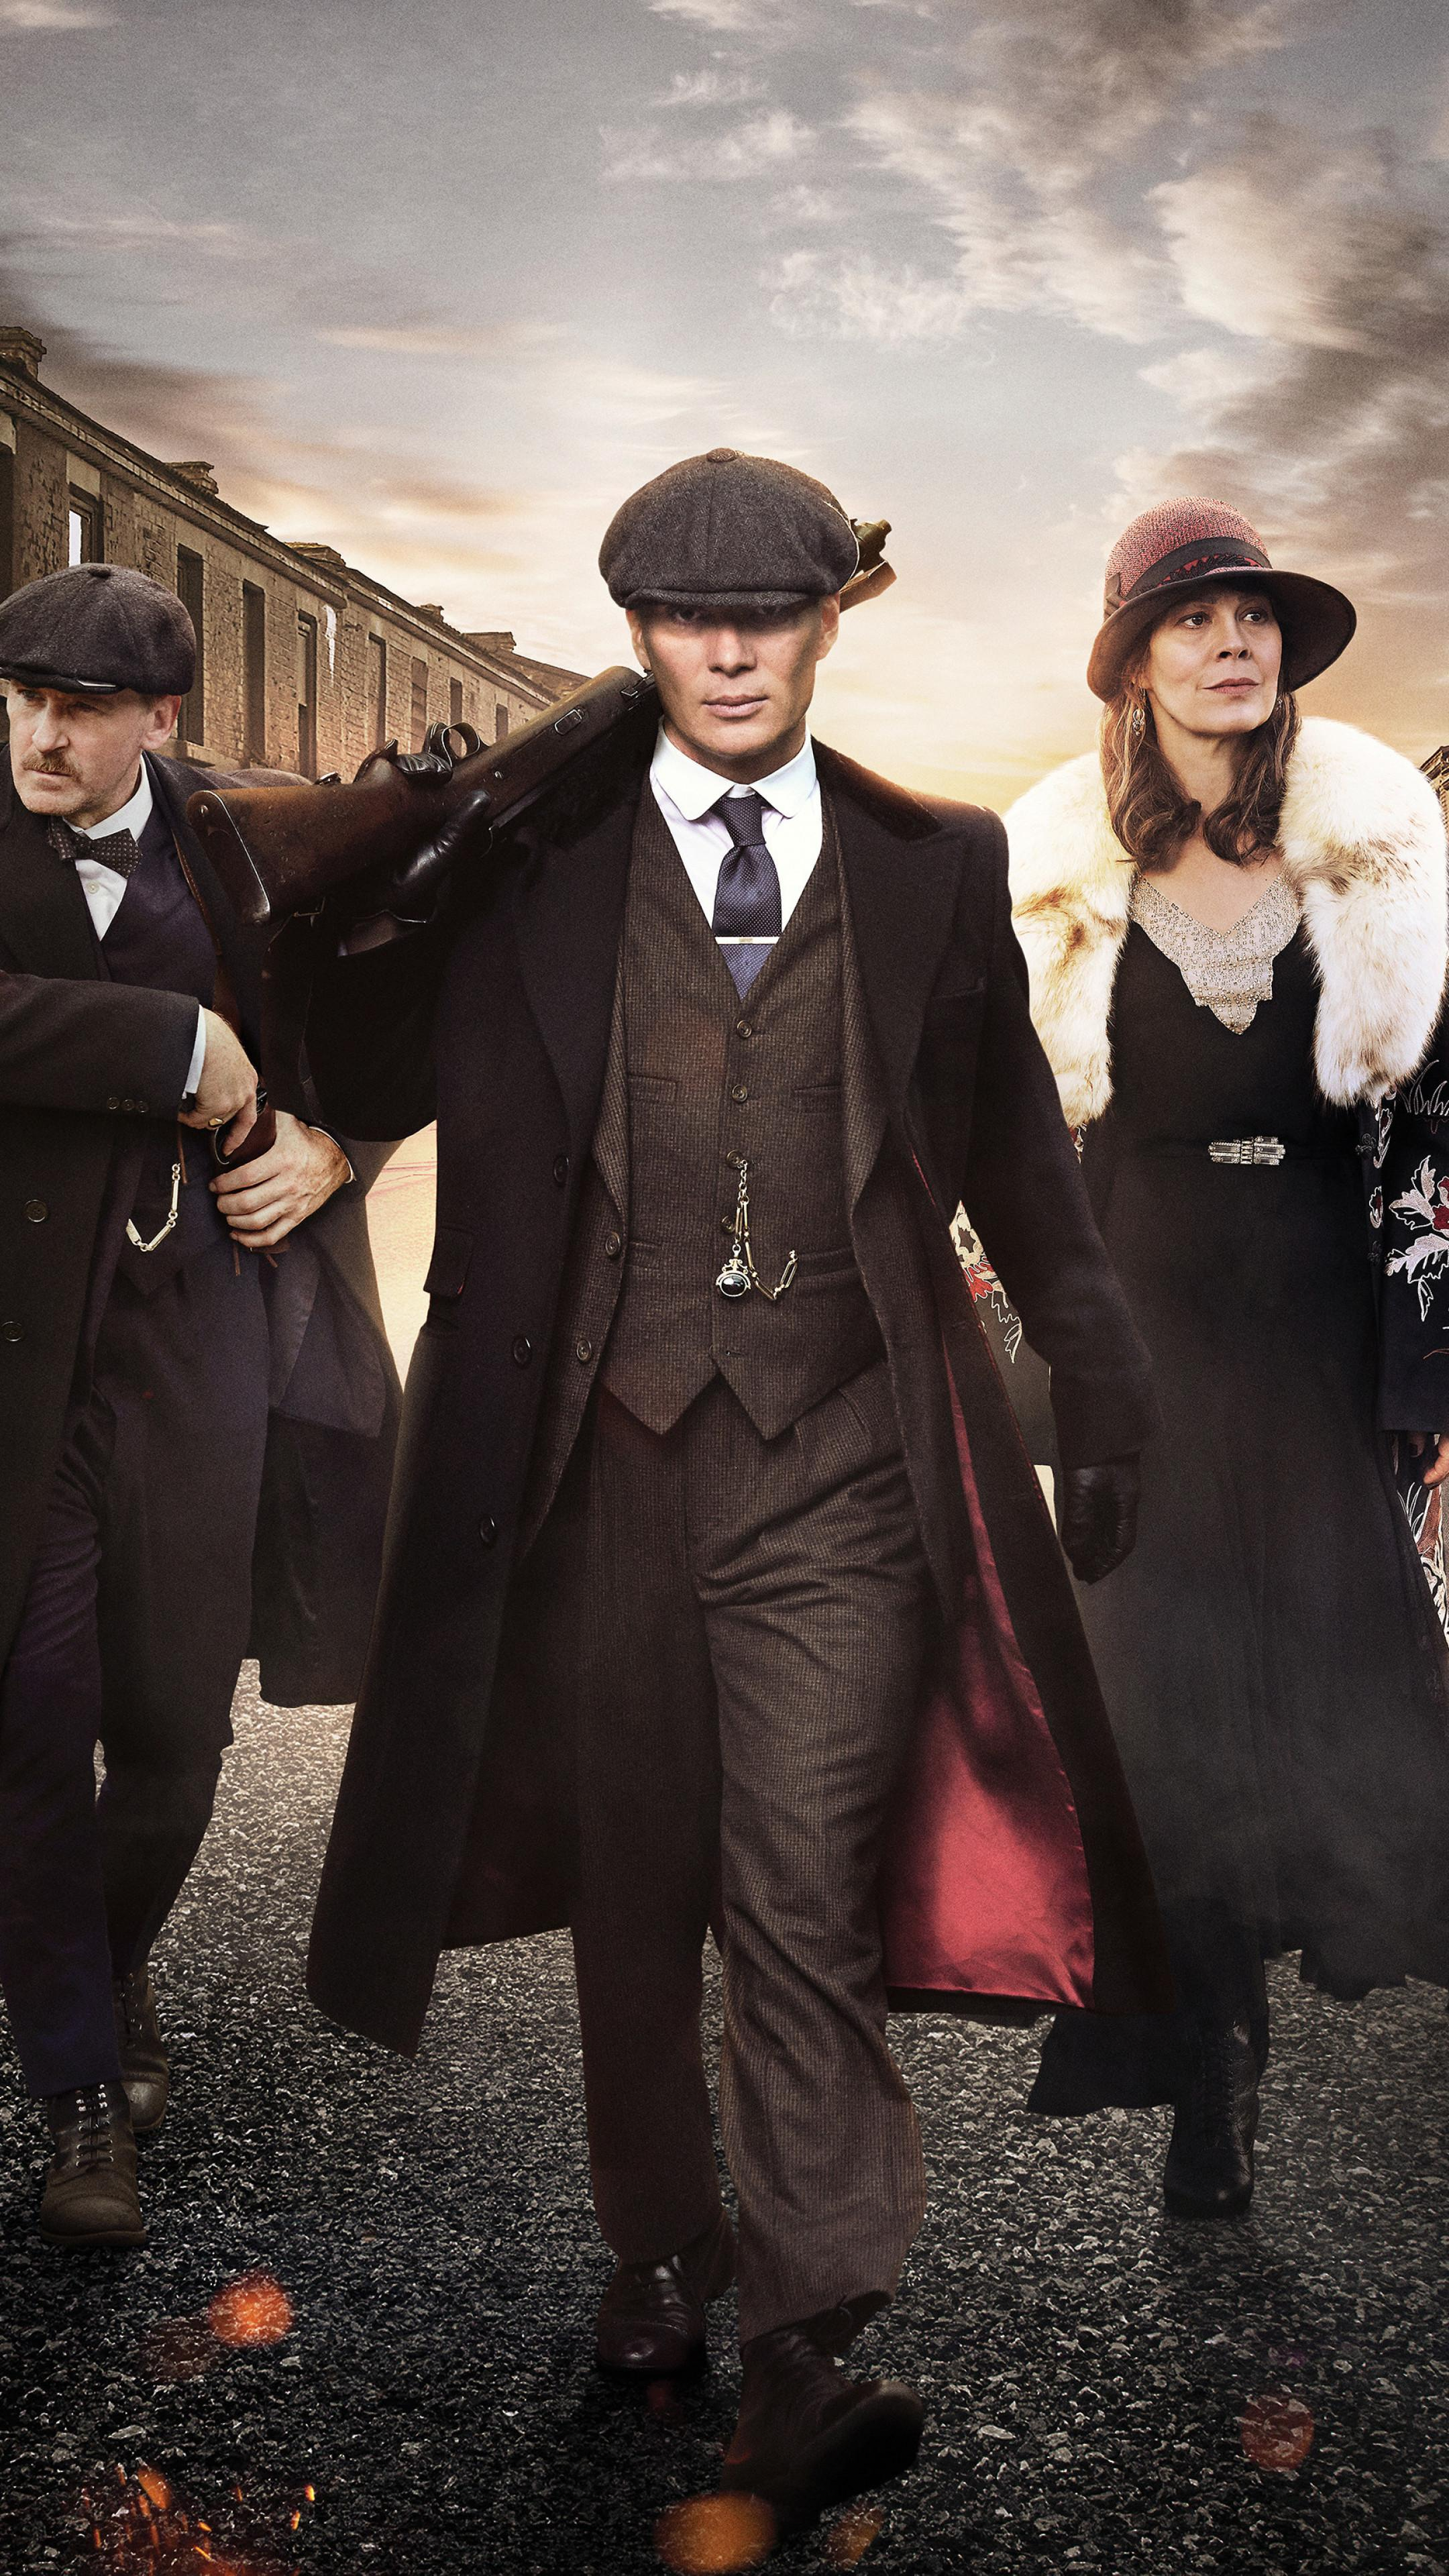 Peaky Blinders HD Android Wallpapers - Wallpaper Cave